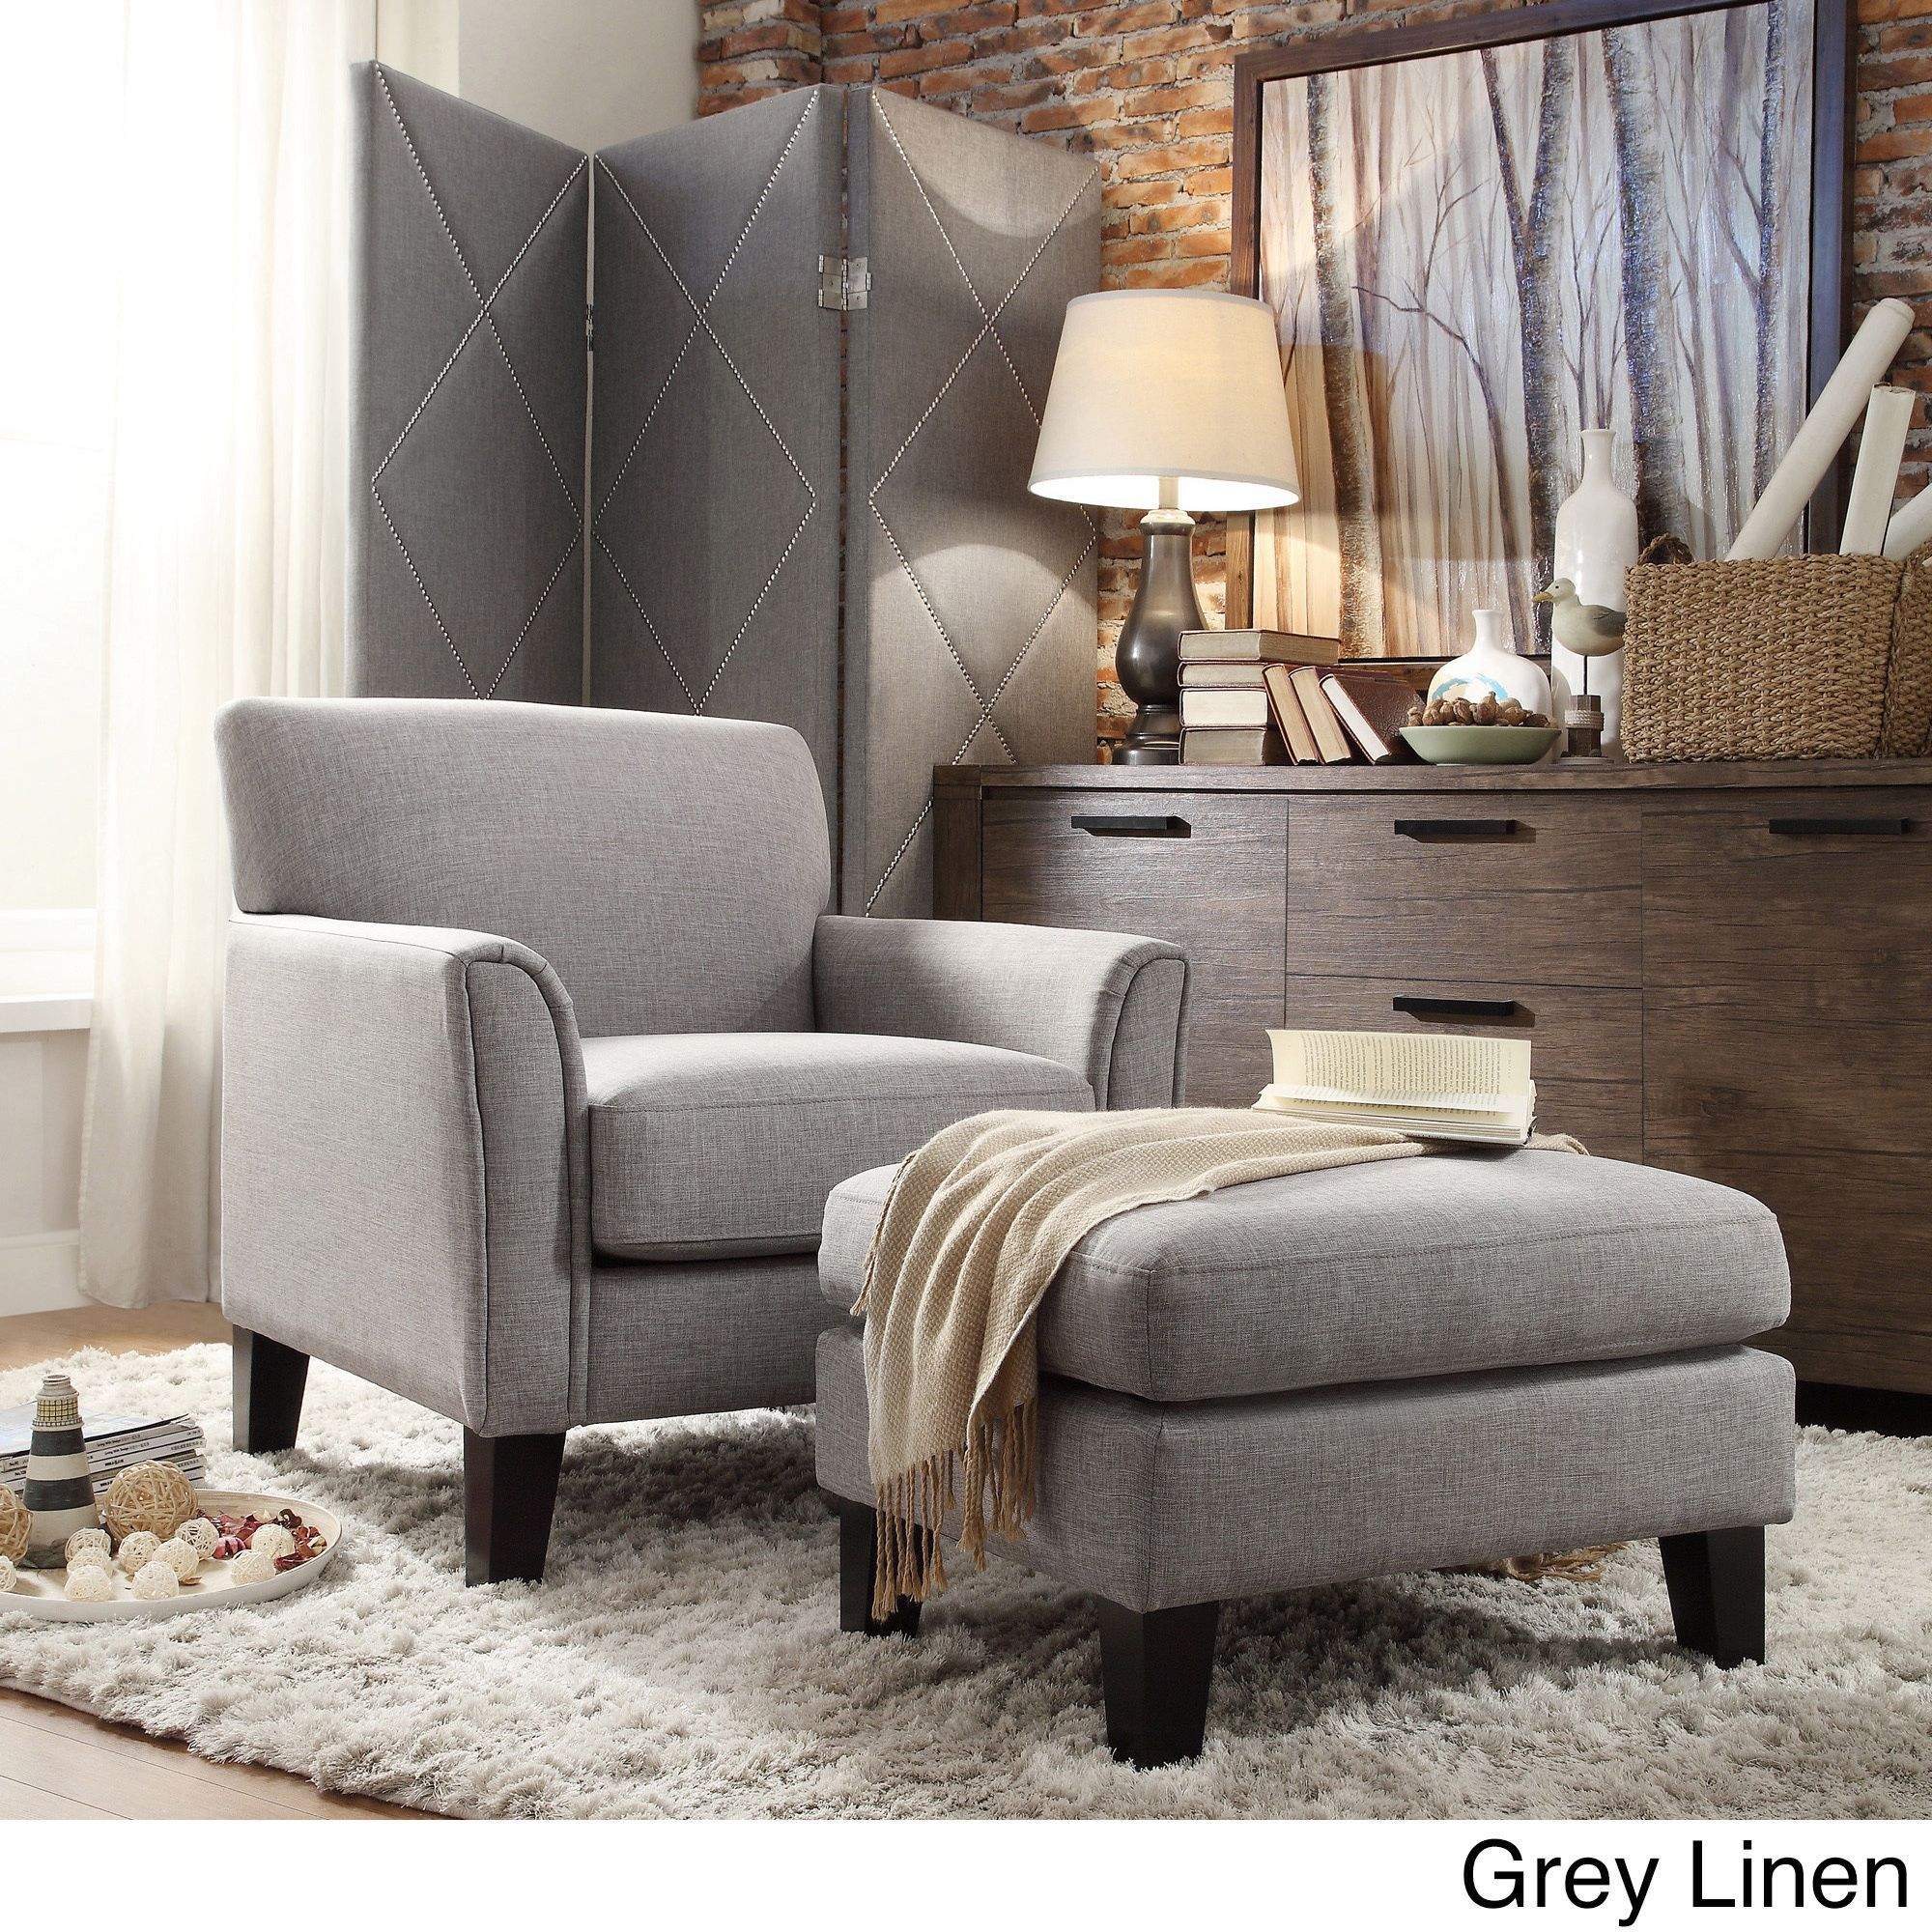 overstuffed ottoman by with overstock and apoc classic large chairs image chair upholstered elena of ottomans